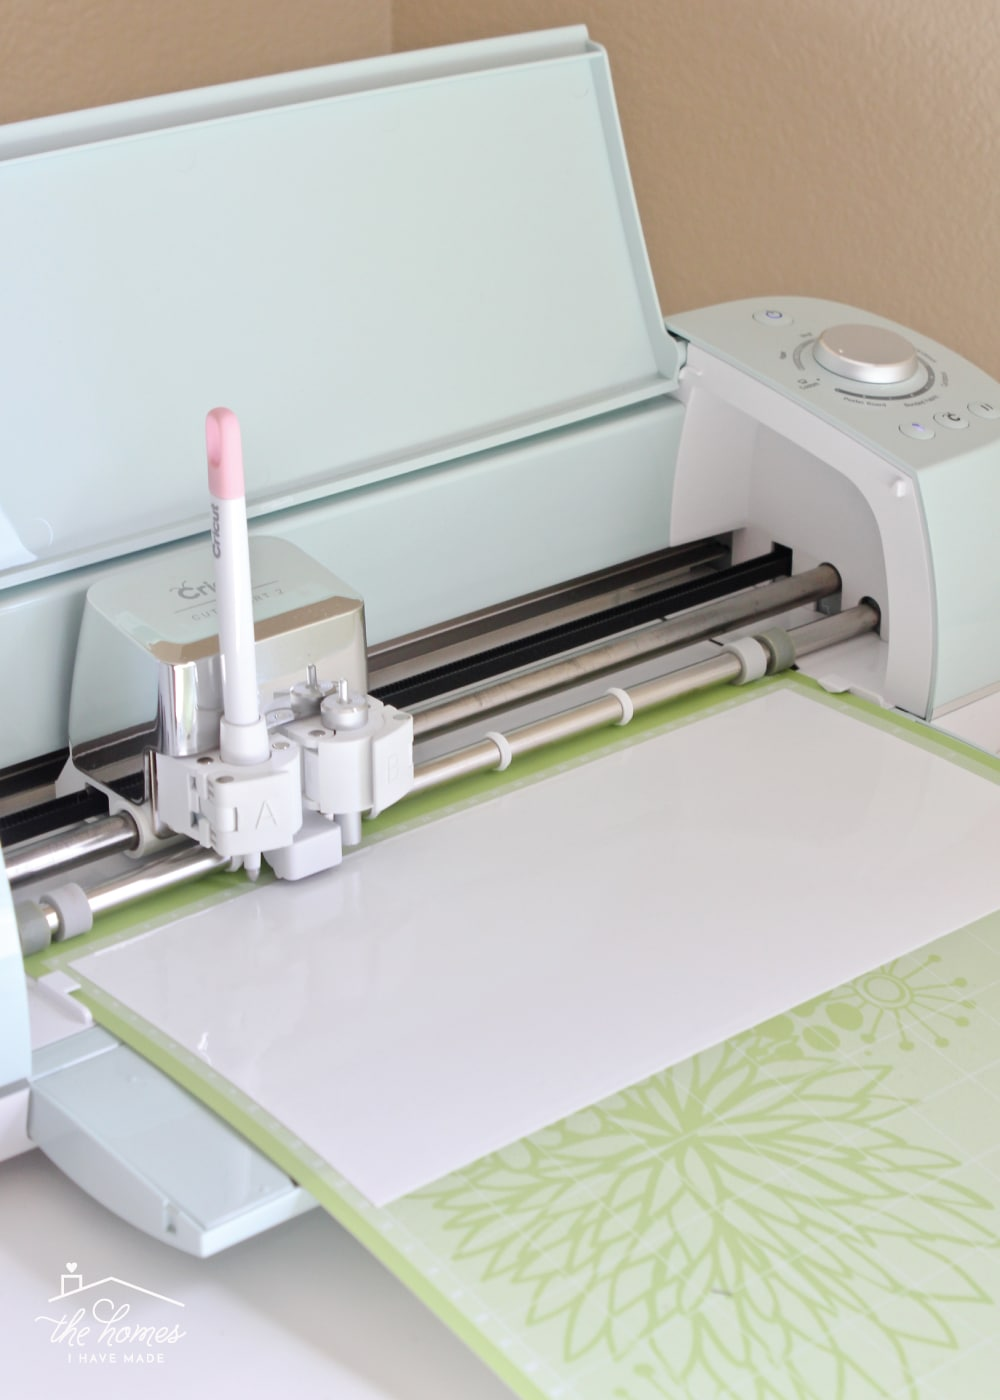 Learn the best tips and tricks for cutting and applying Cricut's Window Cling on a Cricut Explore!